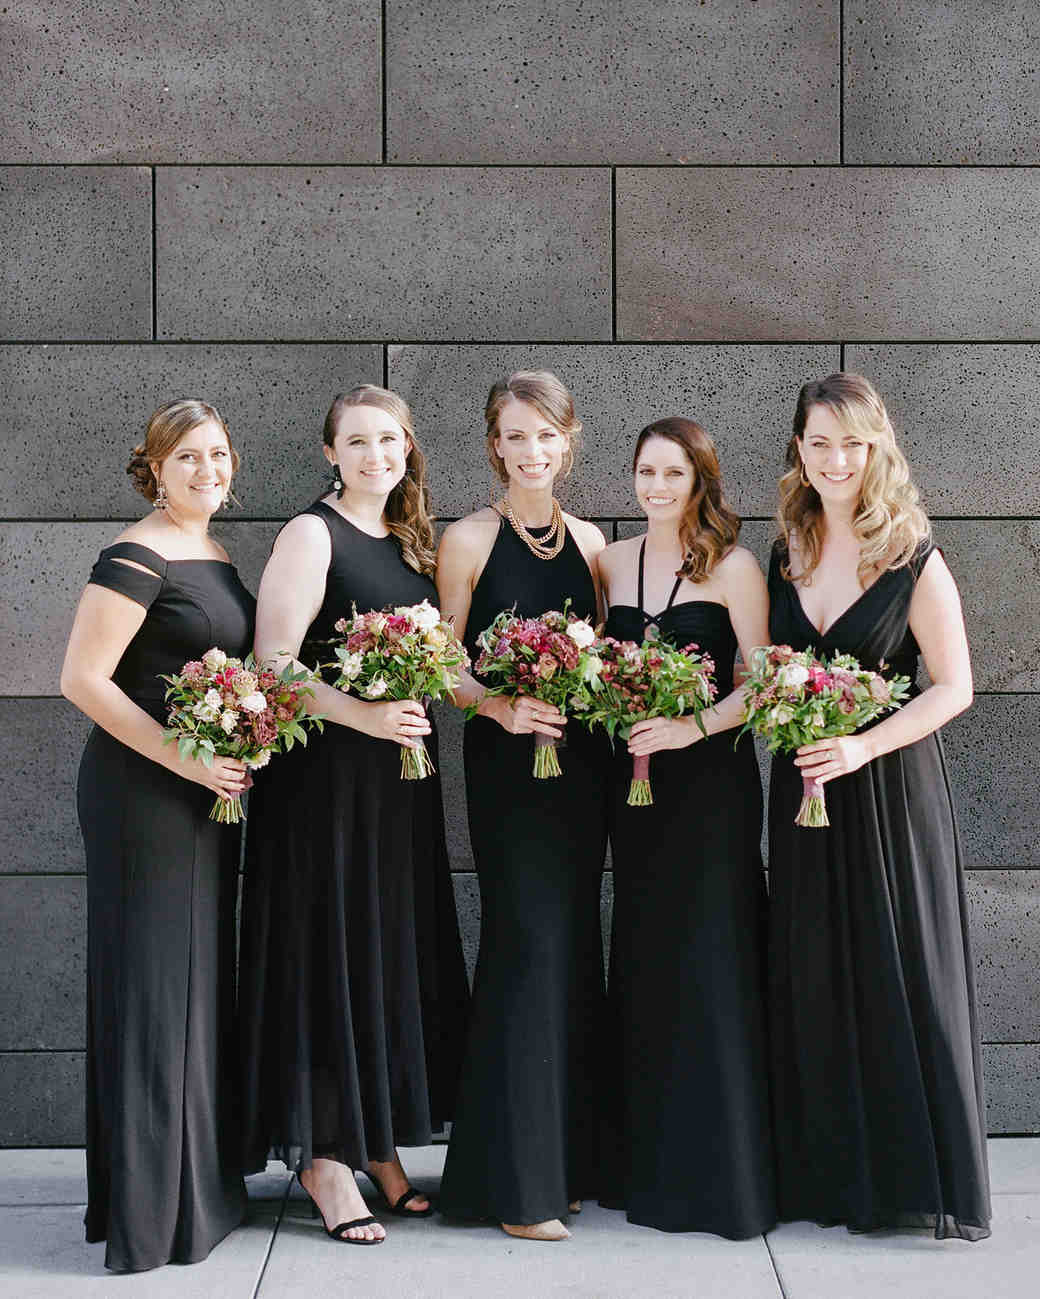 a90dd370ca5 12 New Rules for Dressing Your Bridesmaids